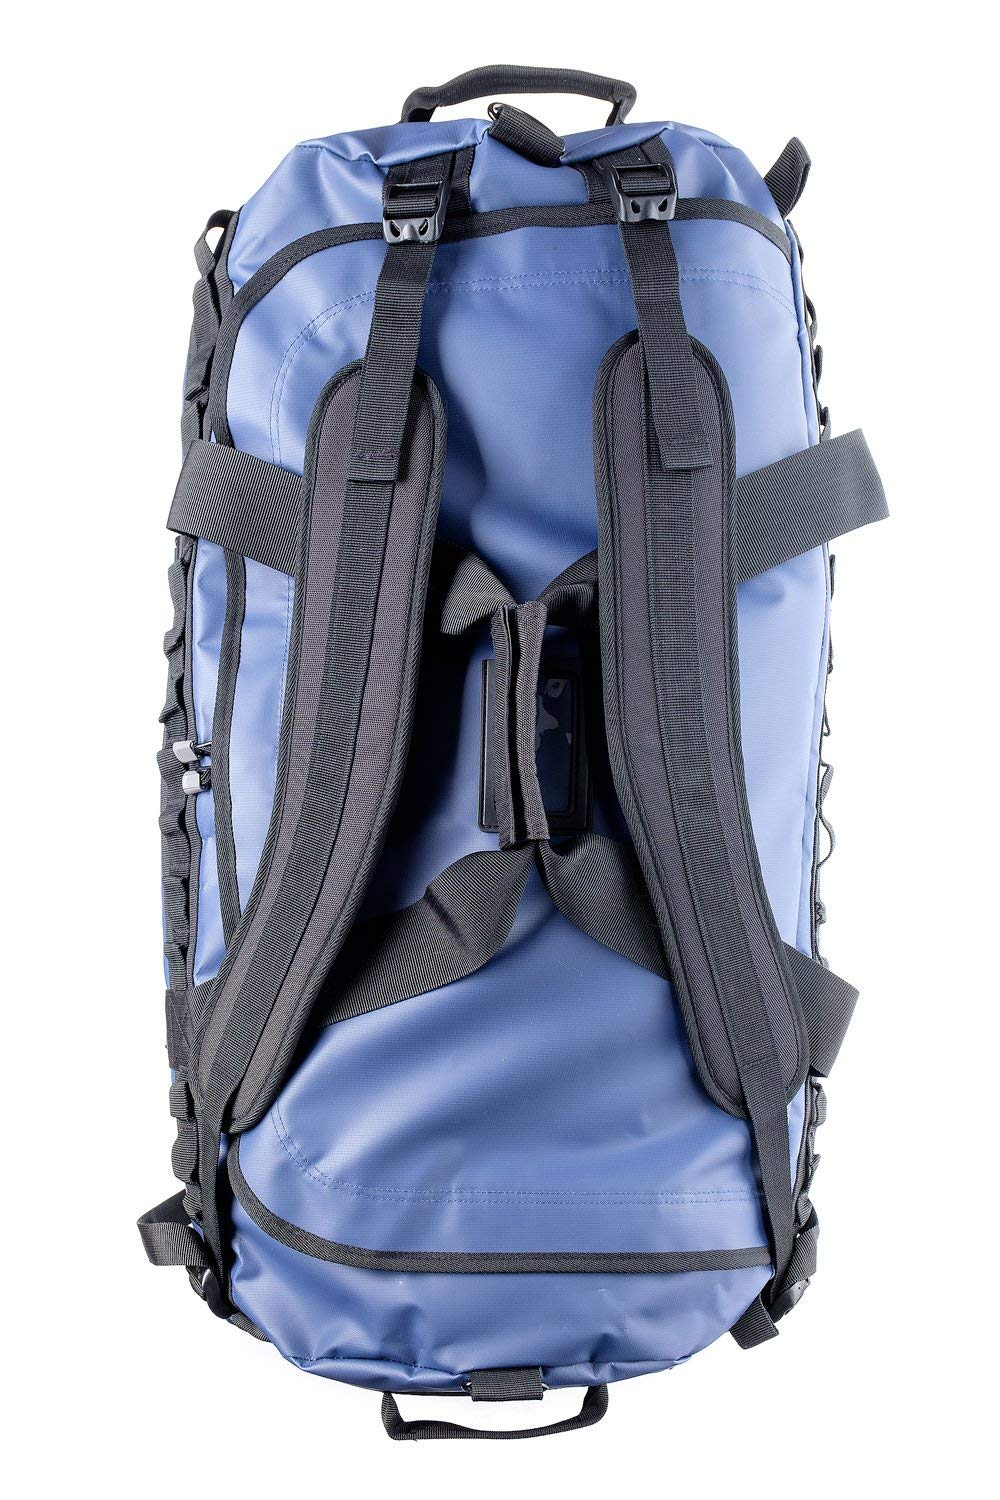 TYTN Duffel Bag 90L for Expeditions, Travel & Sport by TYTN